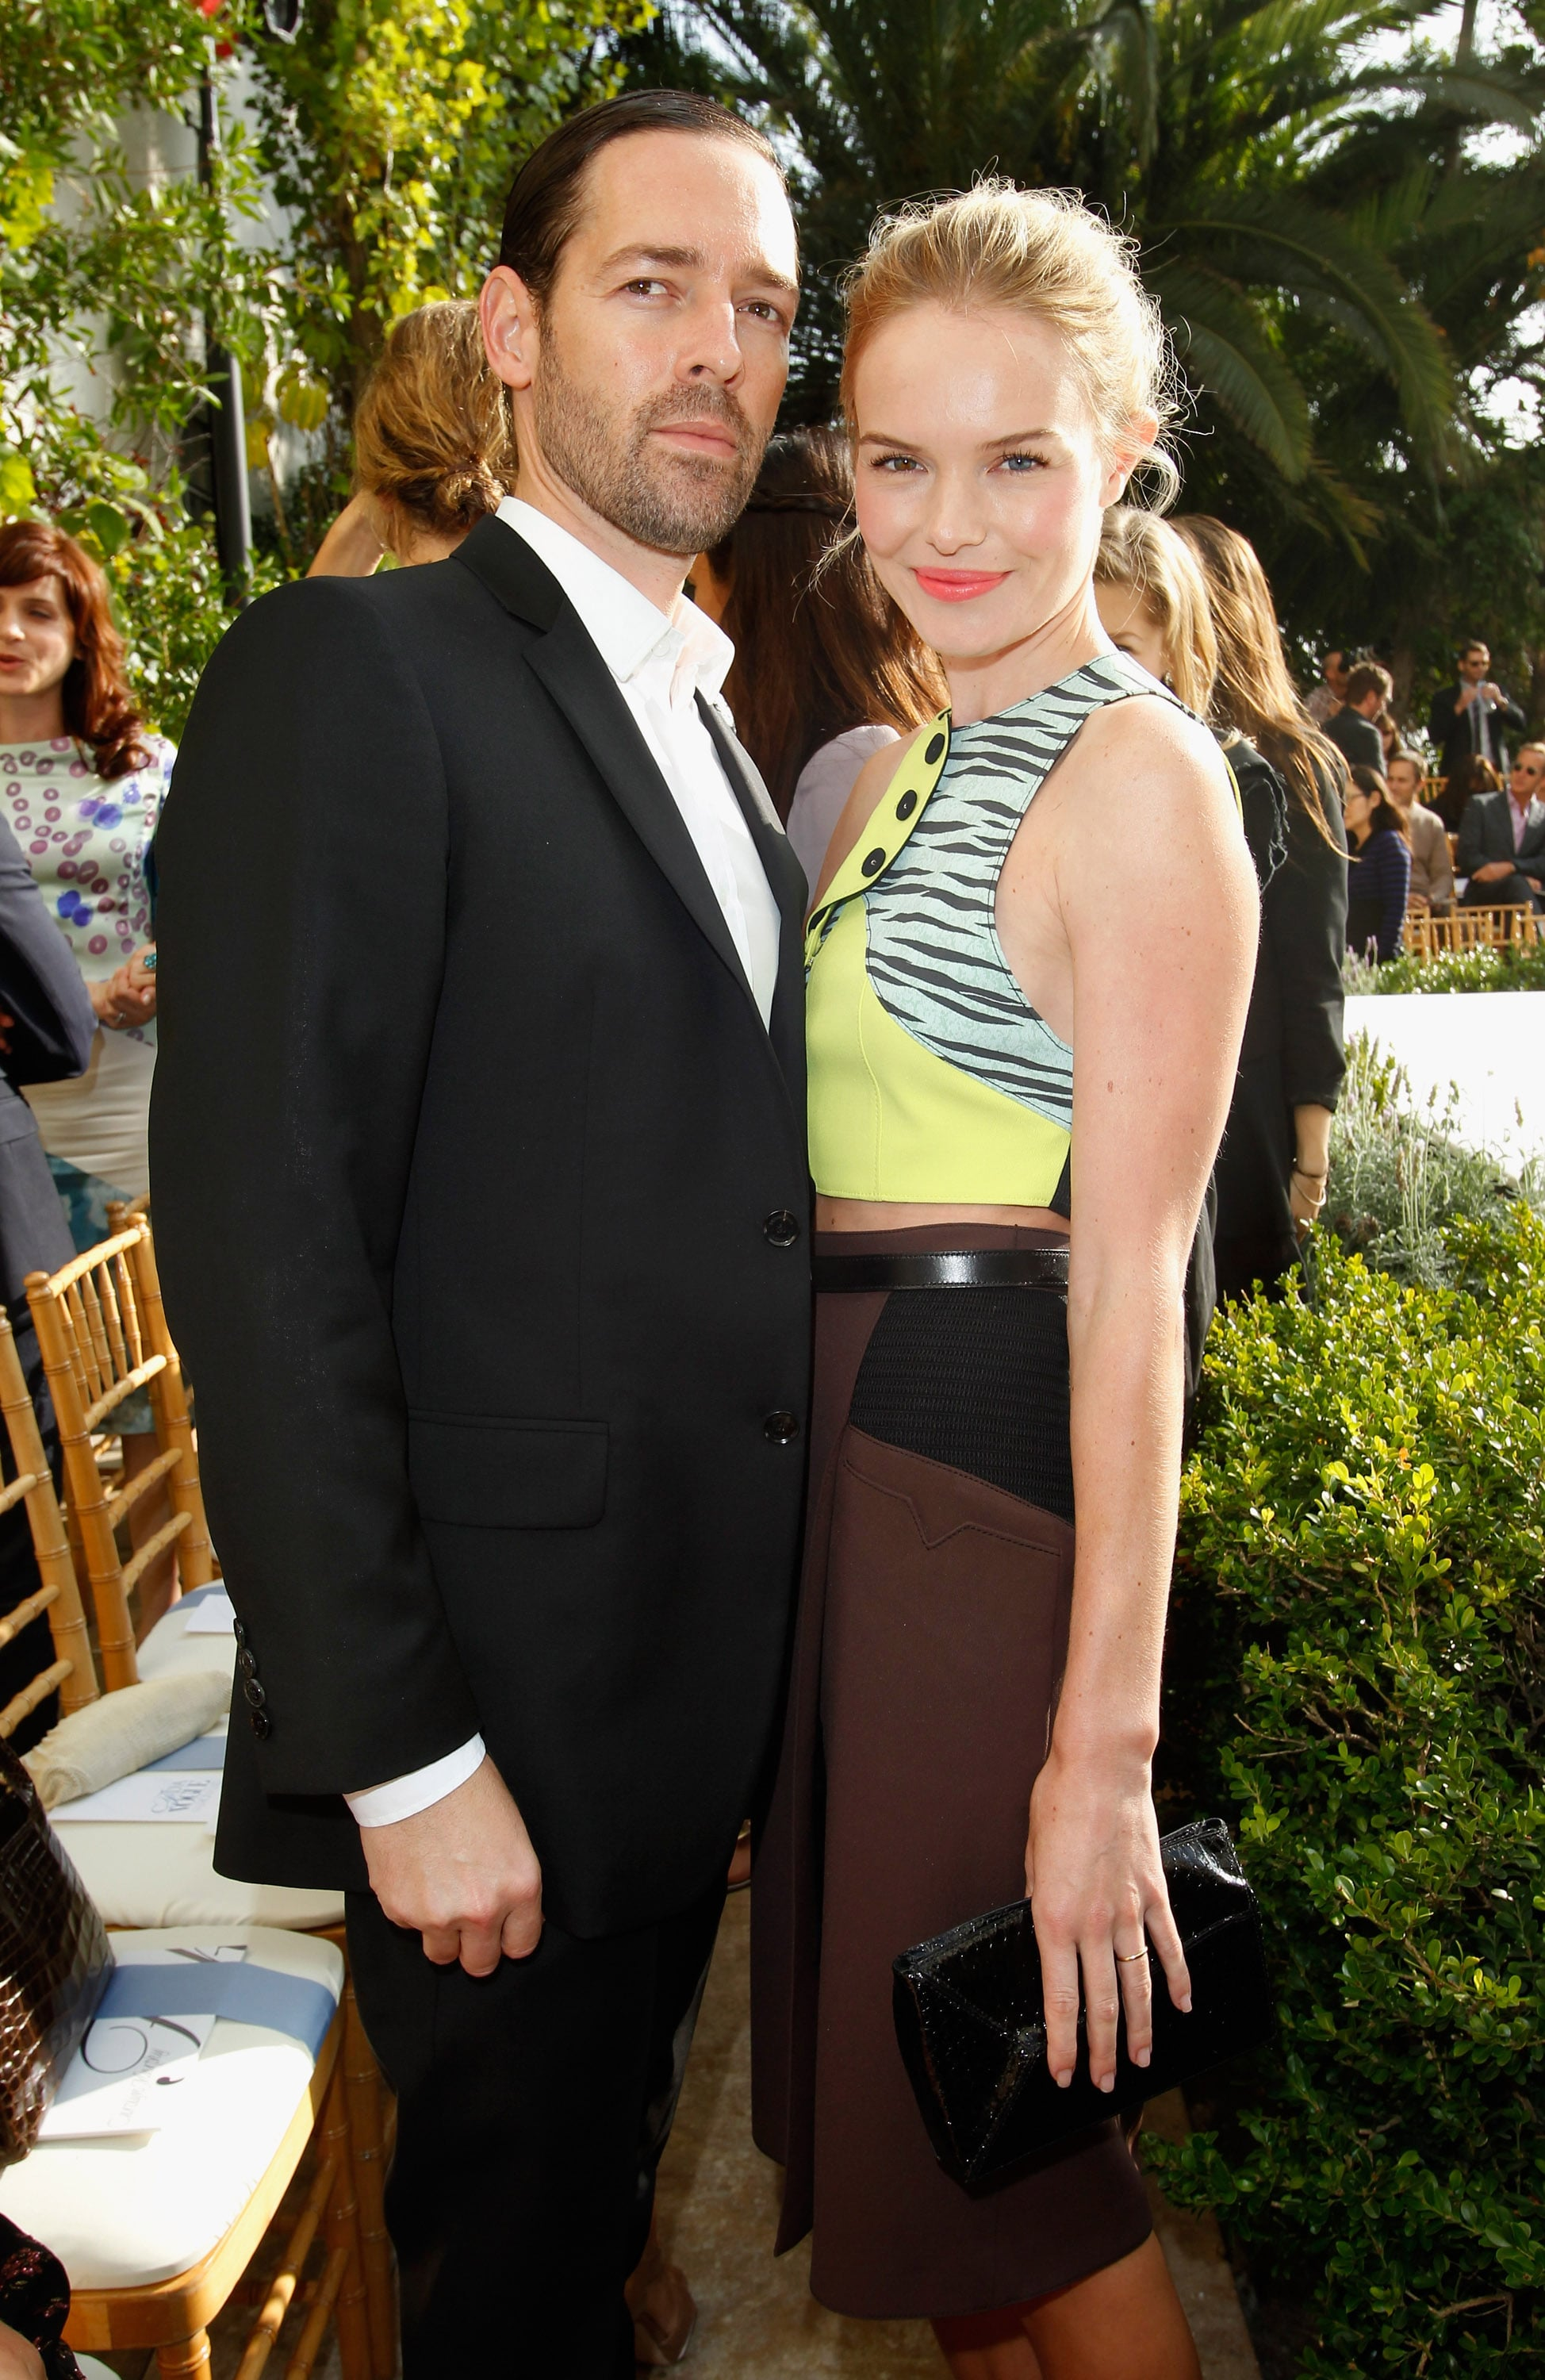 Kate Bosworth and Michael Polish wore matching rings on their ring fingers at a party in LA.